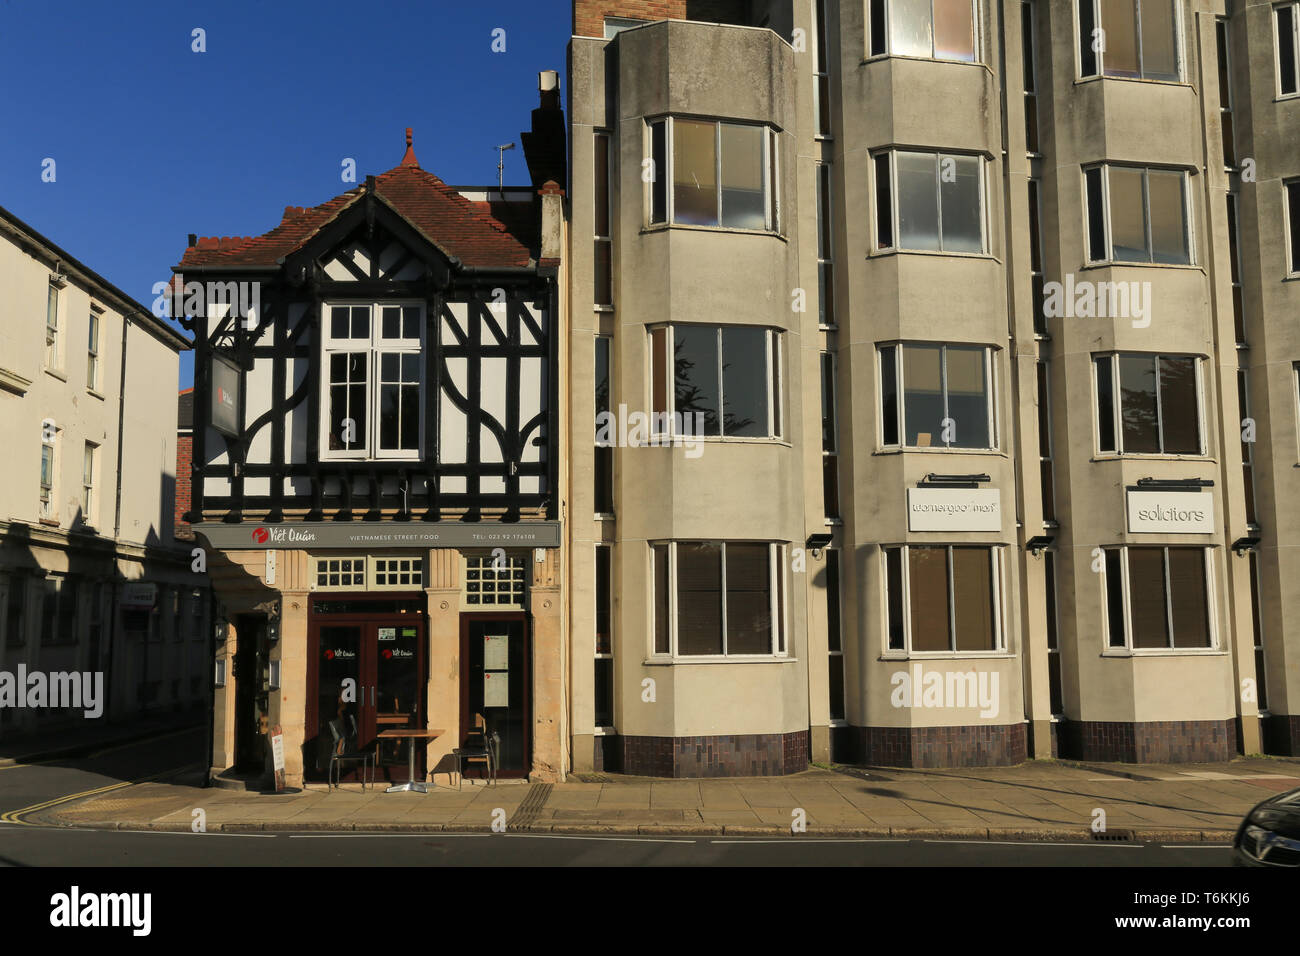 Contrast between an old half timber house attached to a modern home. Portsmouth. - Stock Image